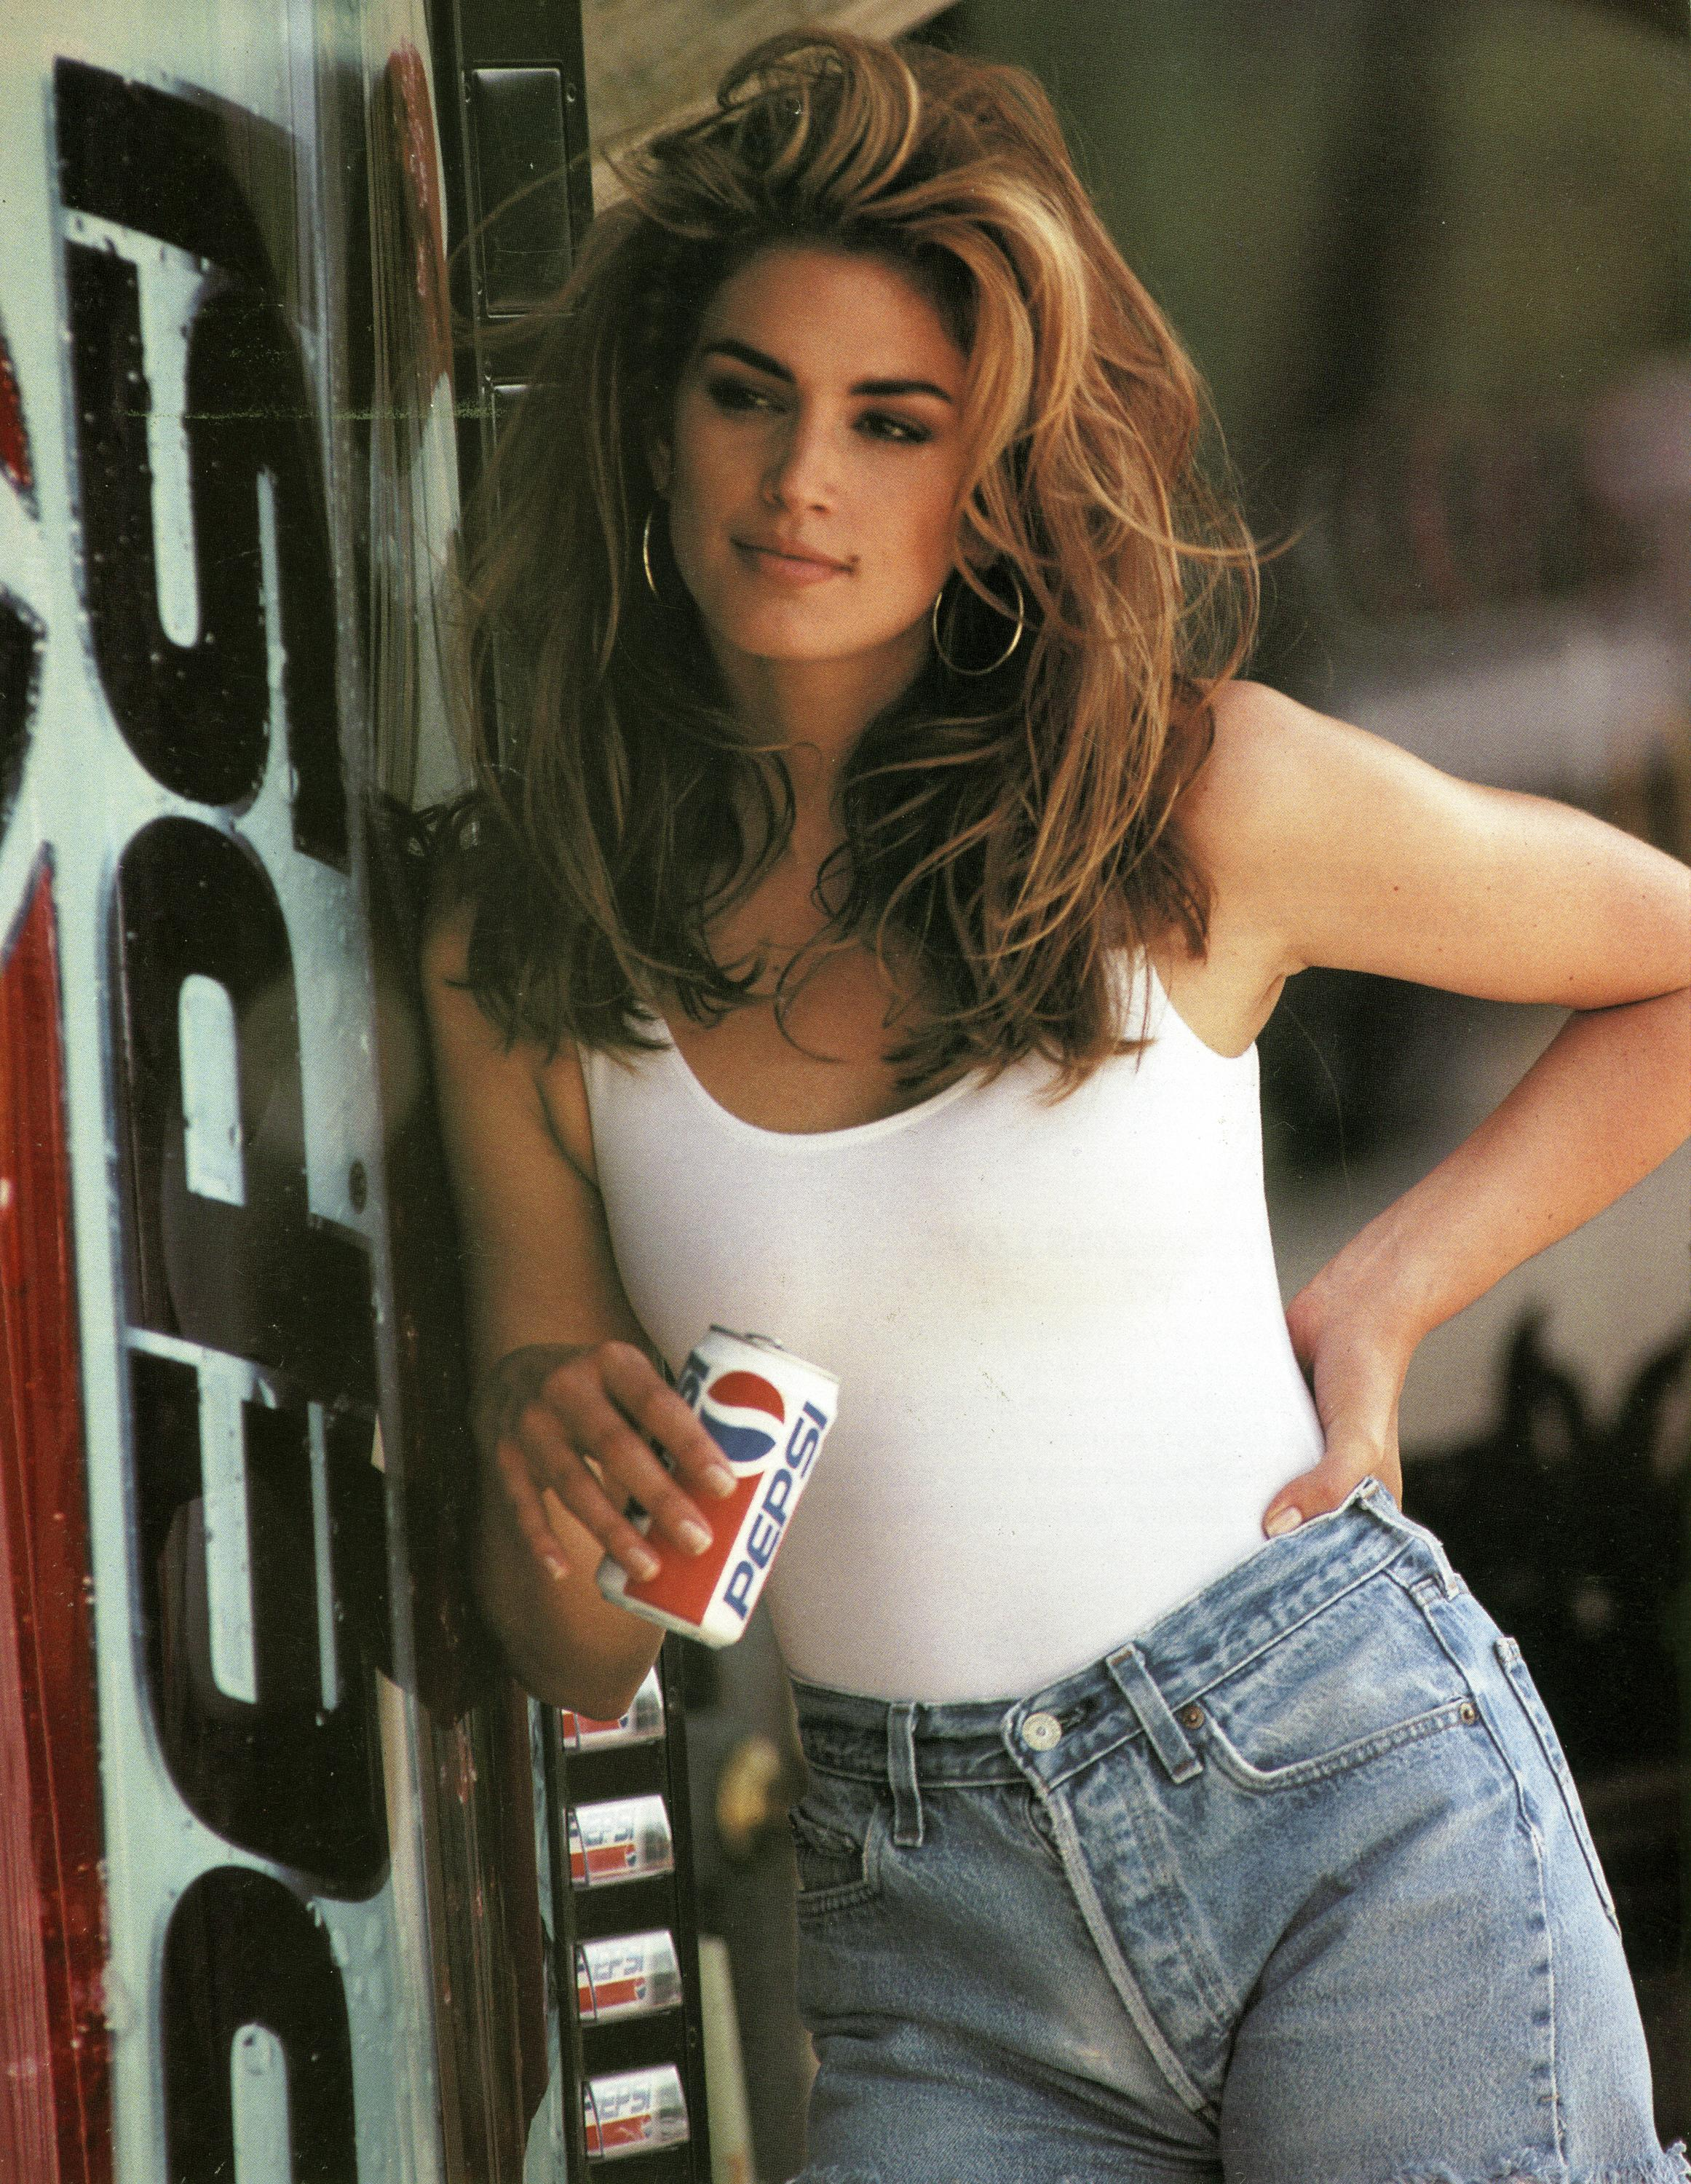 Photos Cindy Crawford nudes (28 photo), Pussy, Sideboobs, Feet, butt 2018